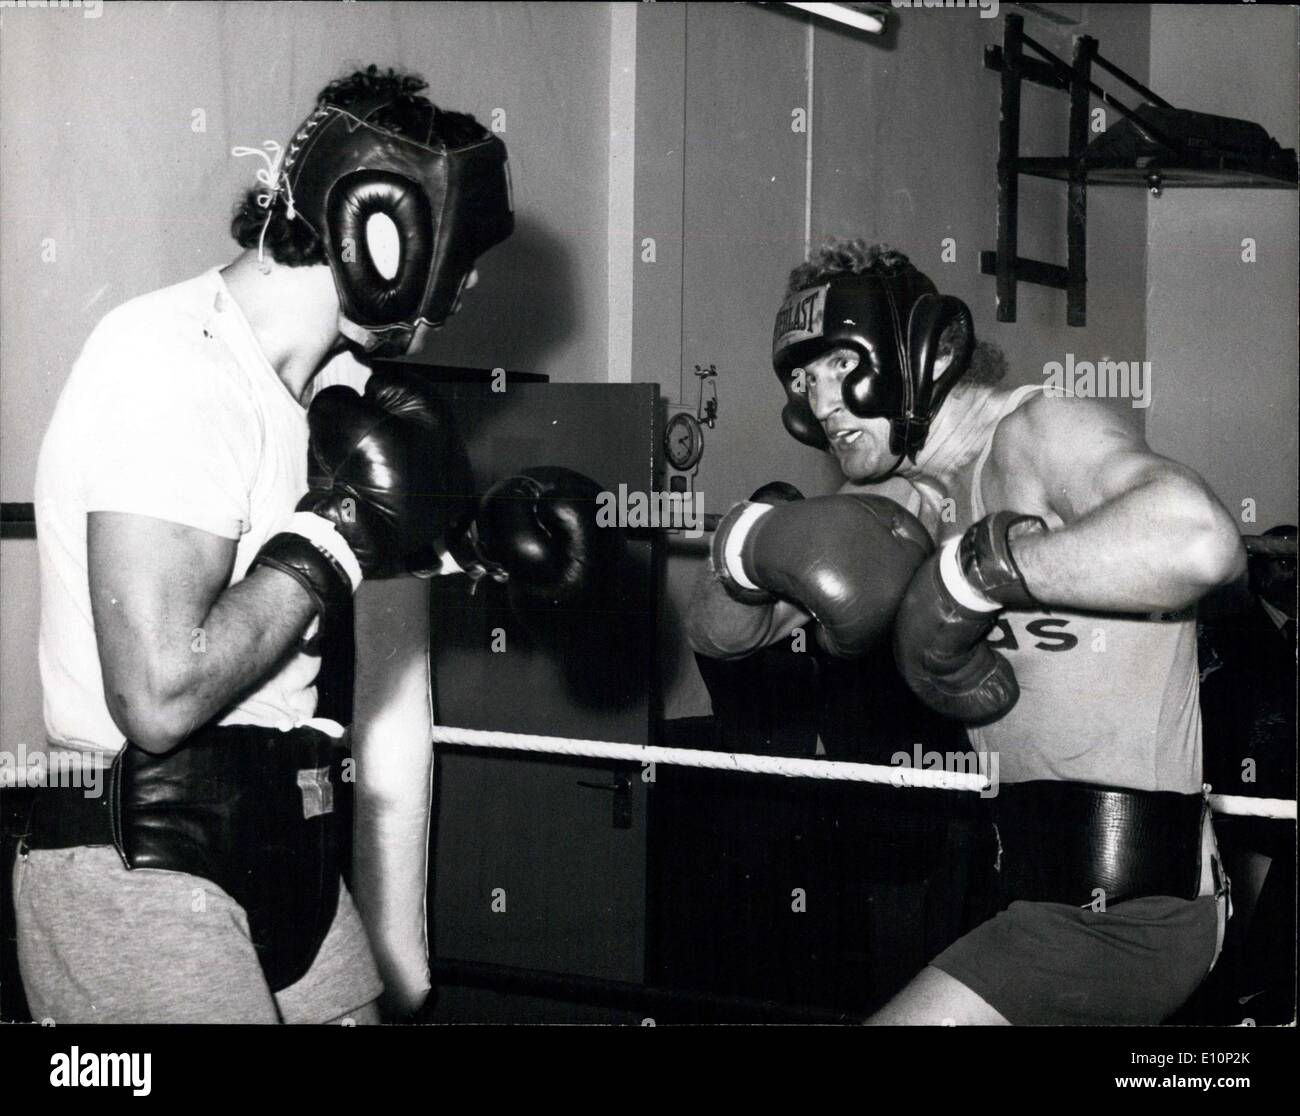 Nov. 08, 1973 - Joe Bugner trains for fight against Mac Foster.: Joe Bugner, Britain's European heavyweight champion, was training today at the British Boxing Board of Control's gymnasium in Hampstead, for his fight against the American heavyweight Mac Foster, at Wembley next Tuesday. Photo shows Joe Bugner (right) seen sparring during today's training session. - Stock Image